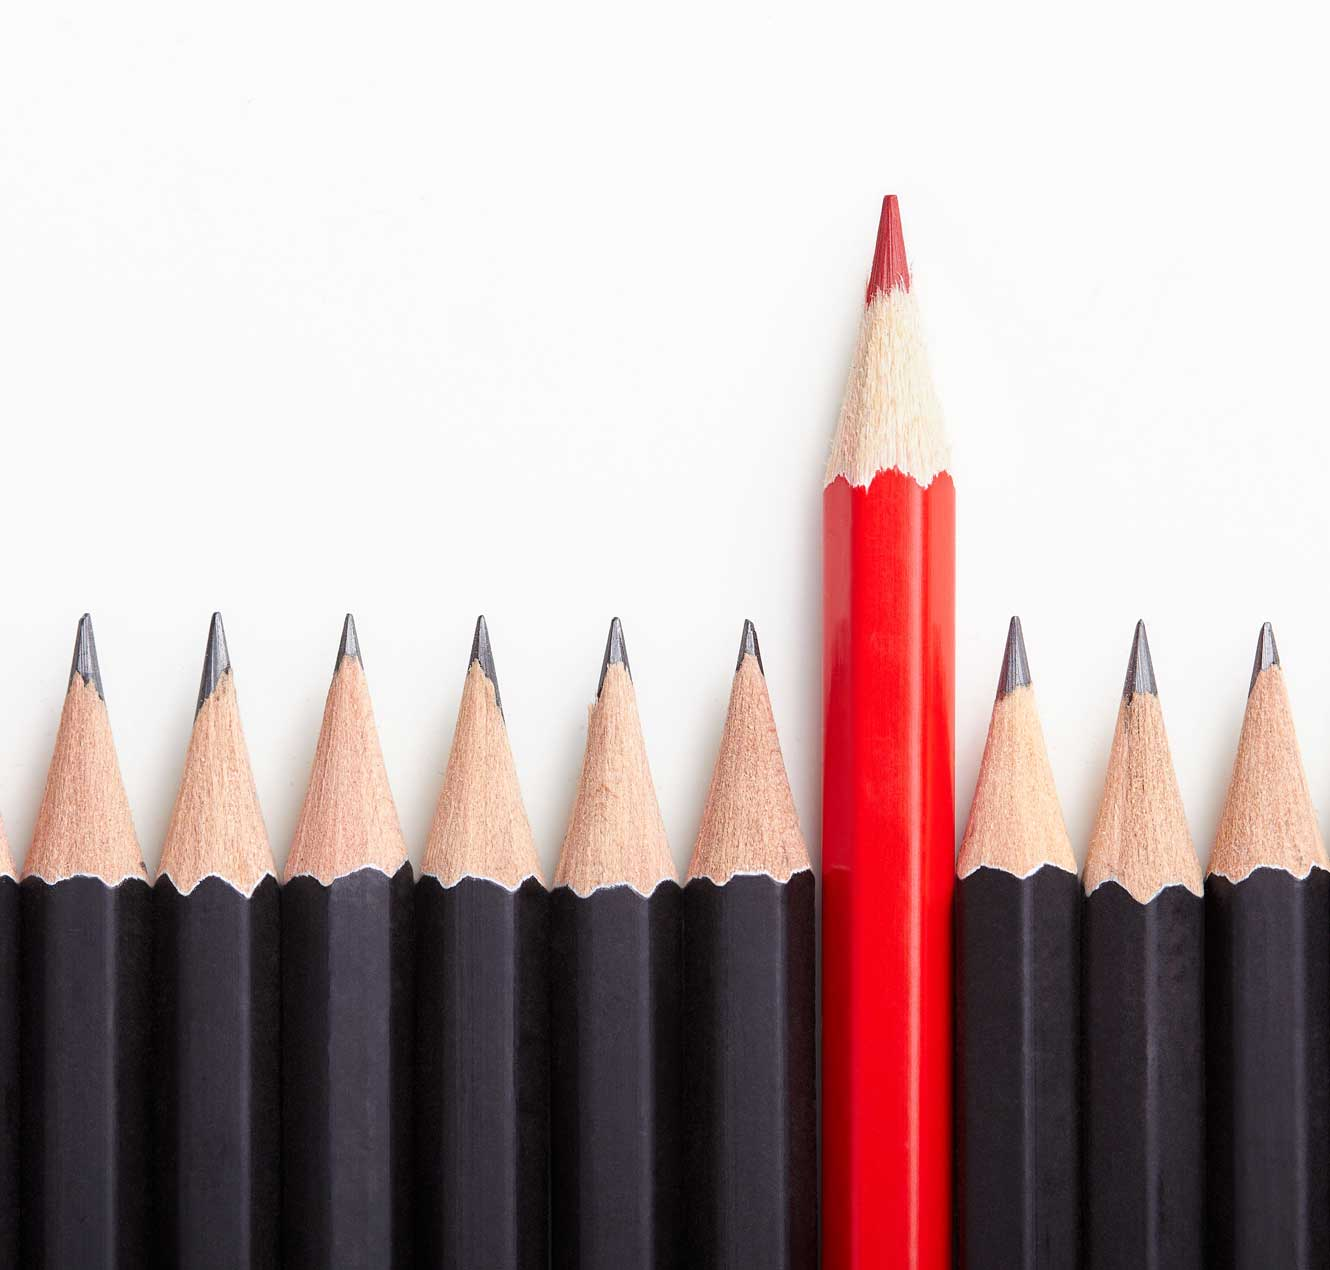 Red pencil standing out from a crowd of identical black pencils.